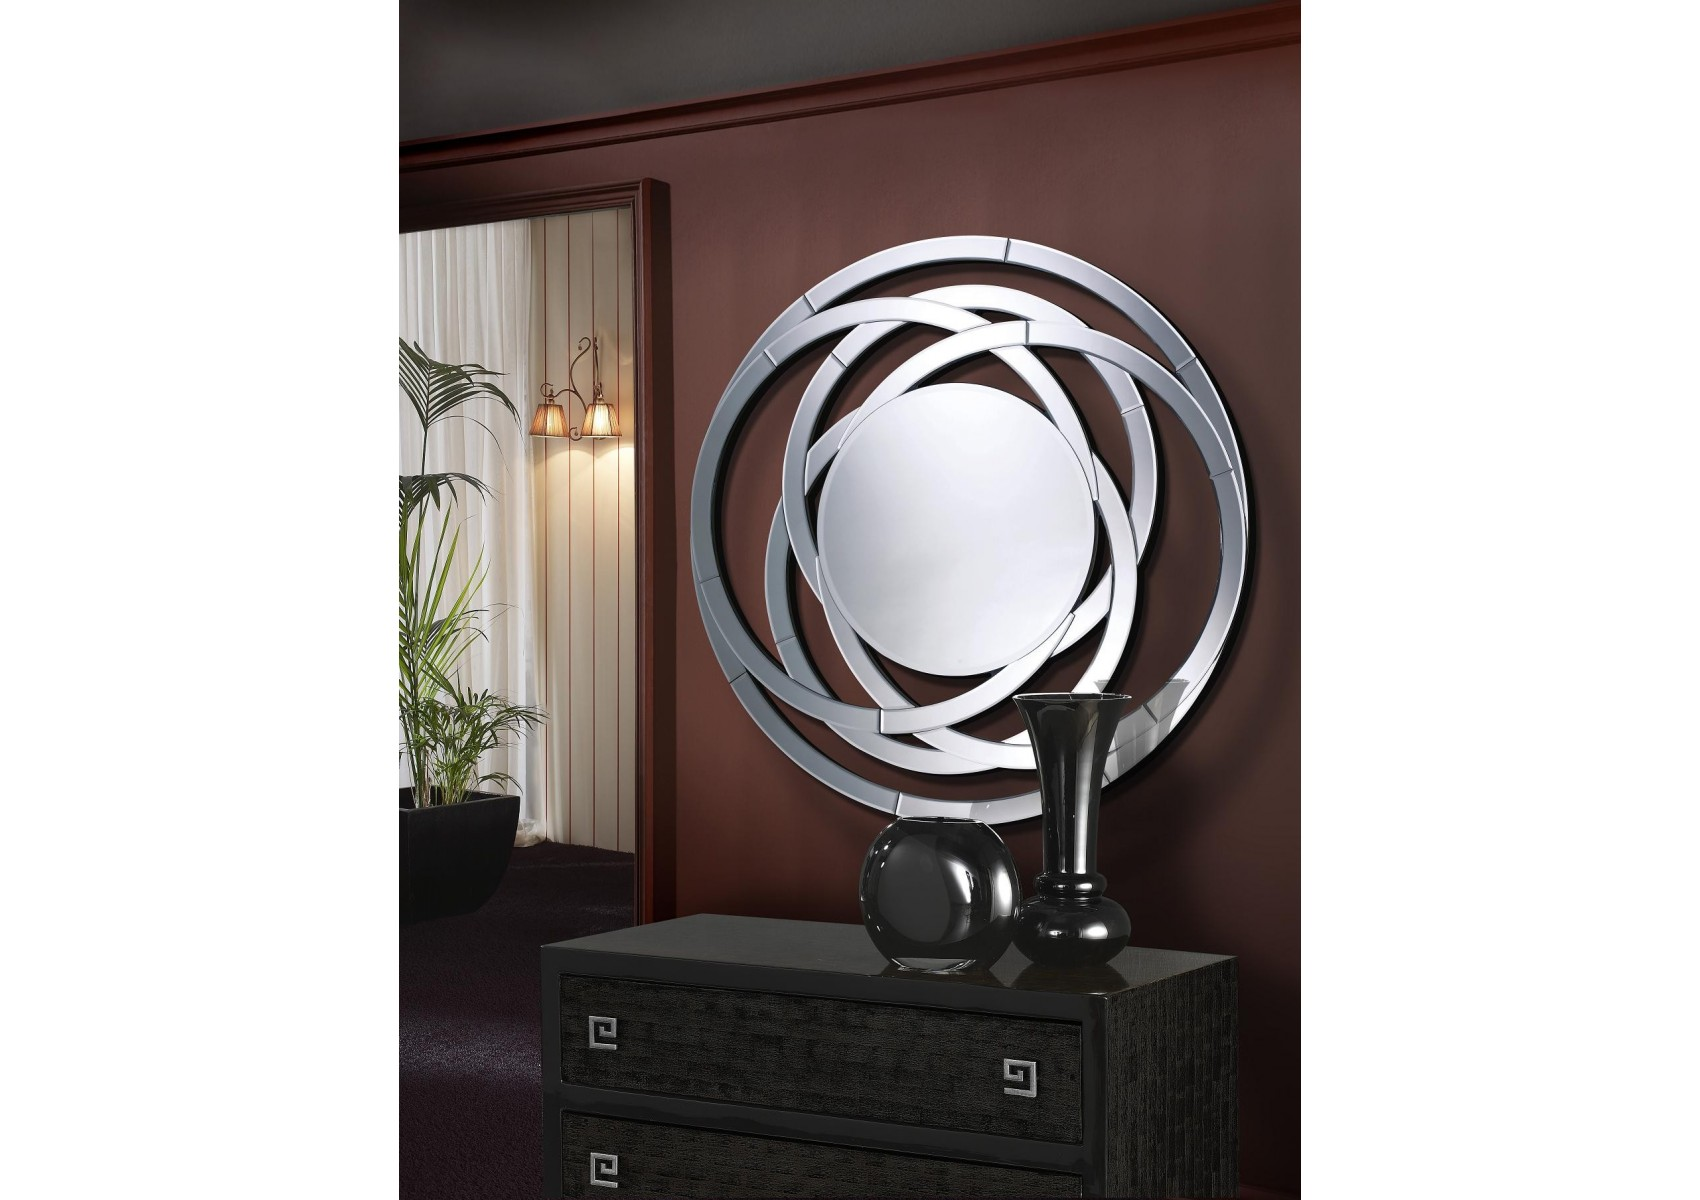 miroir rond design de la collection aros de chez schuller. Black Bedroom Furniture Sets. Home Design Ideas